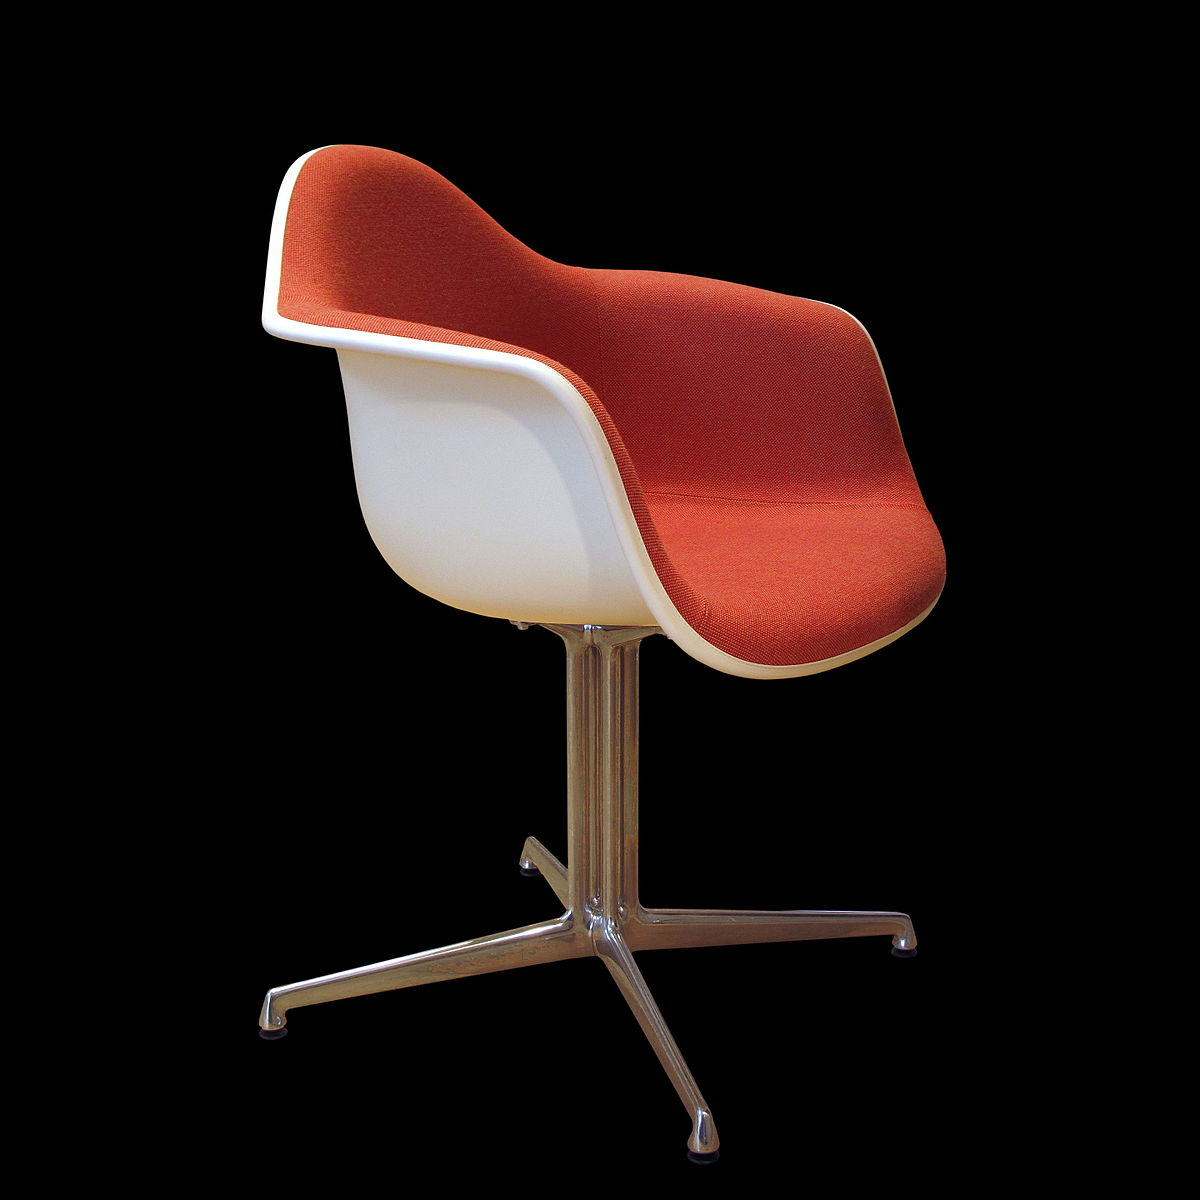 Eames fiberglass armchair wikipedia for Design eames